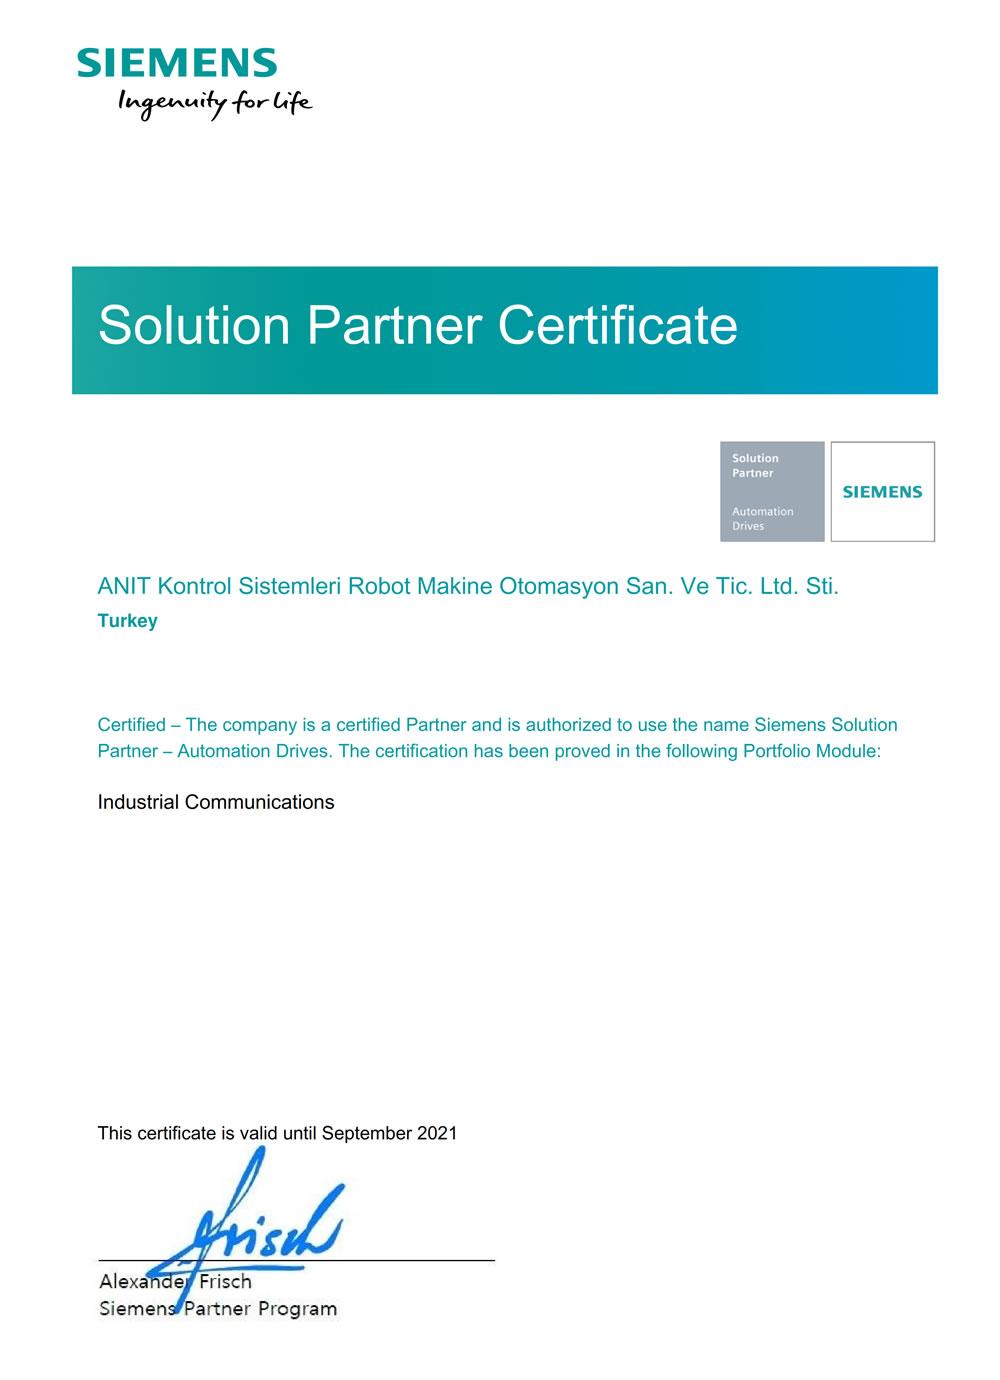 SIEMENS Partner - Industrial Communications